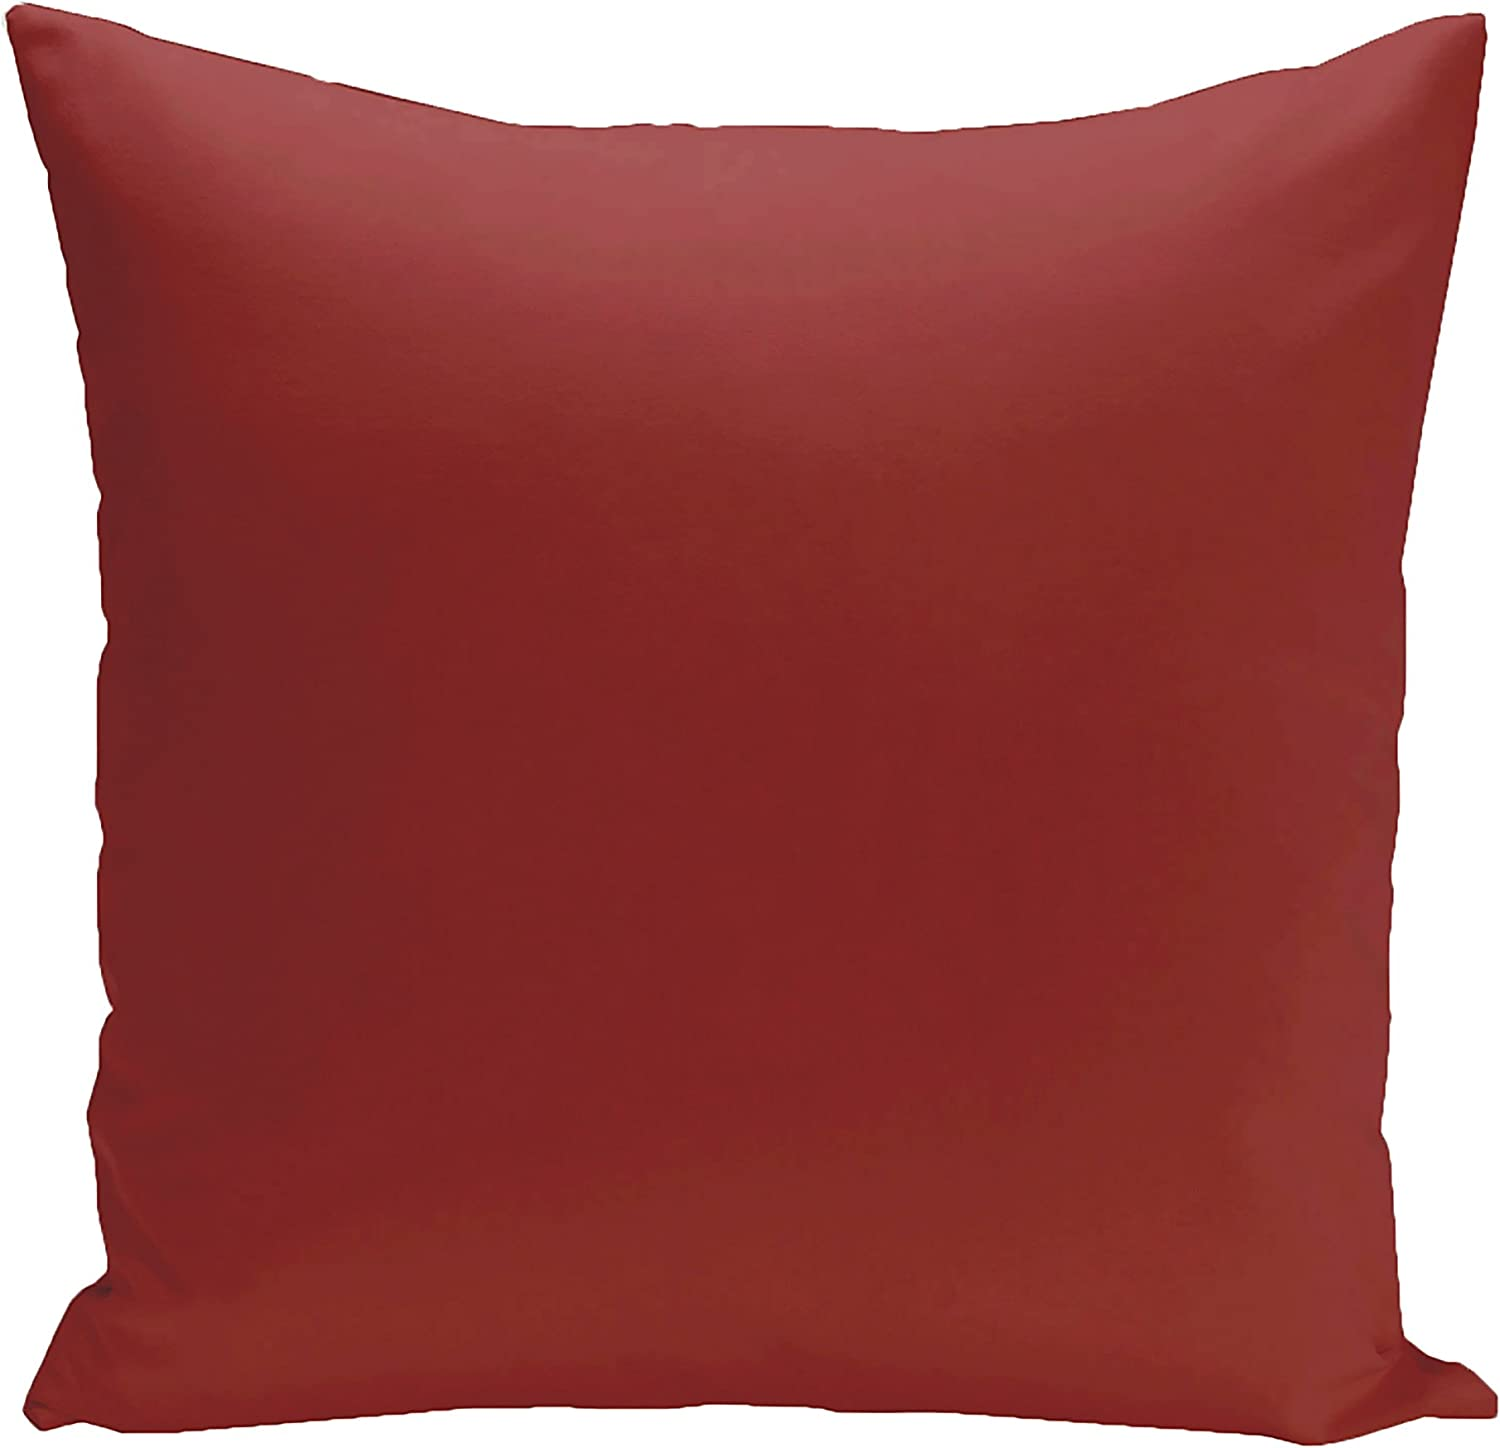 E by design PSON62Dragon26 Asian Collection Solid Decorative Pillow, Dragon,Red